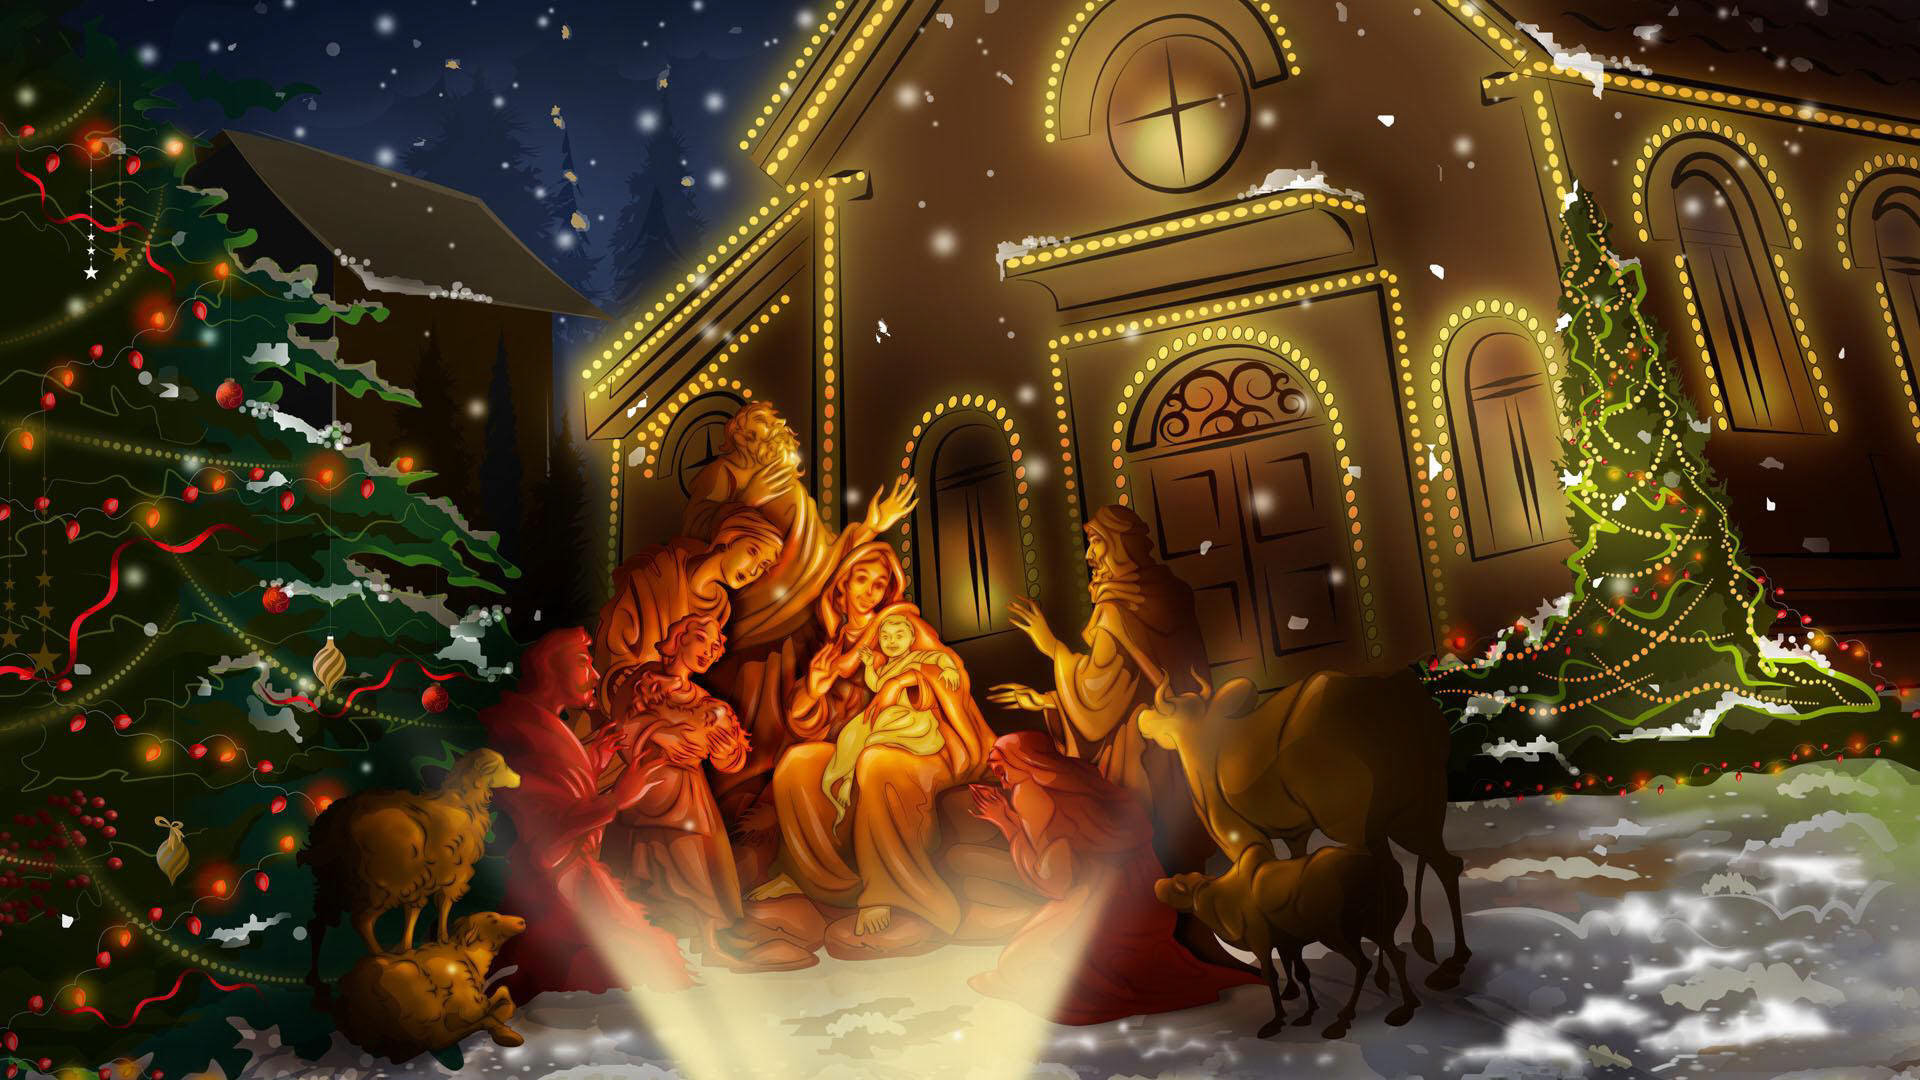 Free Download Christmas Background ID435717 Hd 1920x1080 For PC